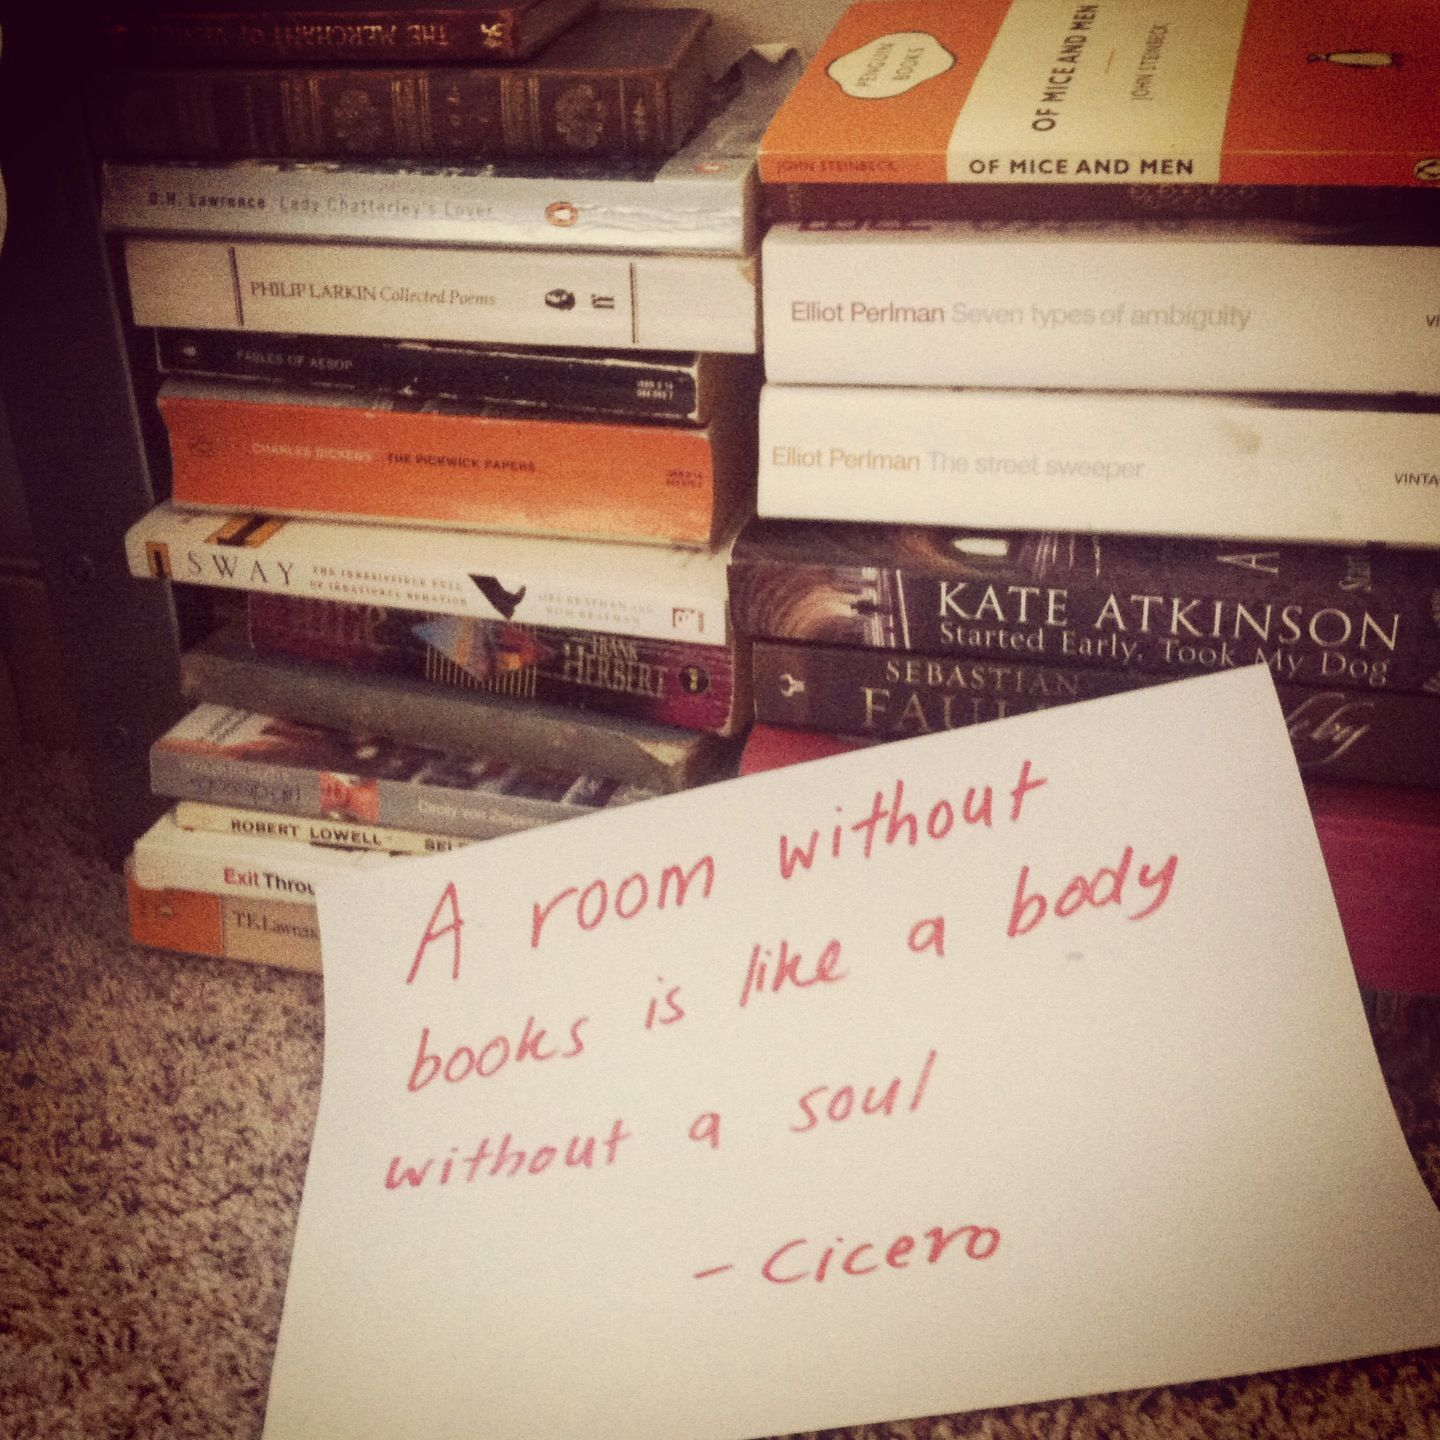 Day Two - Cicero. I think it's safe to say my room has a lot of soul.